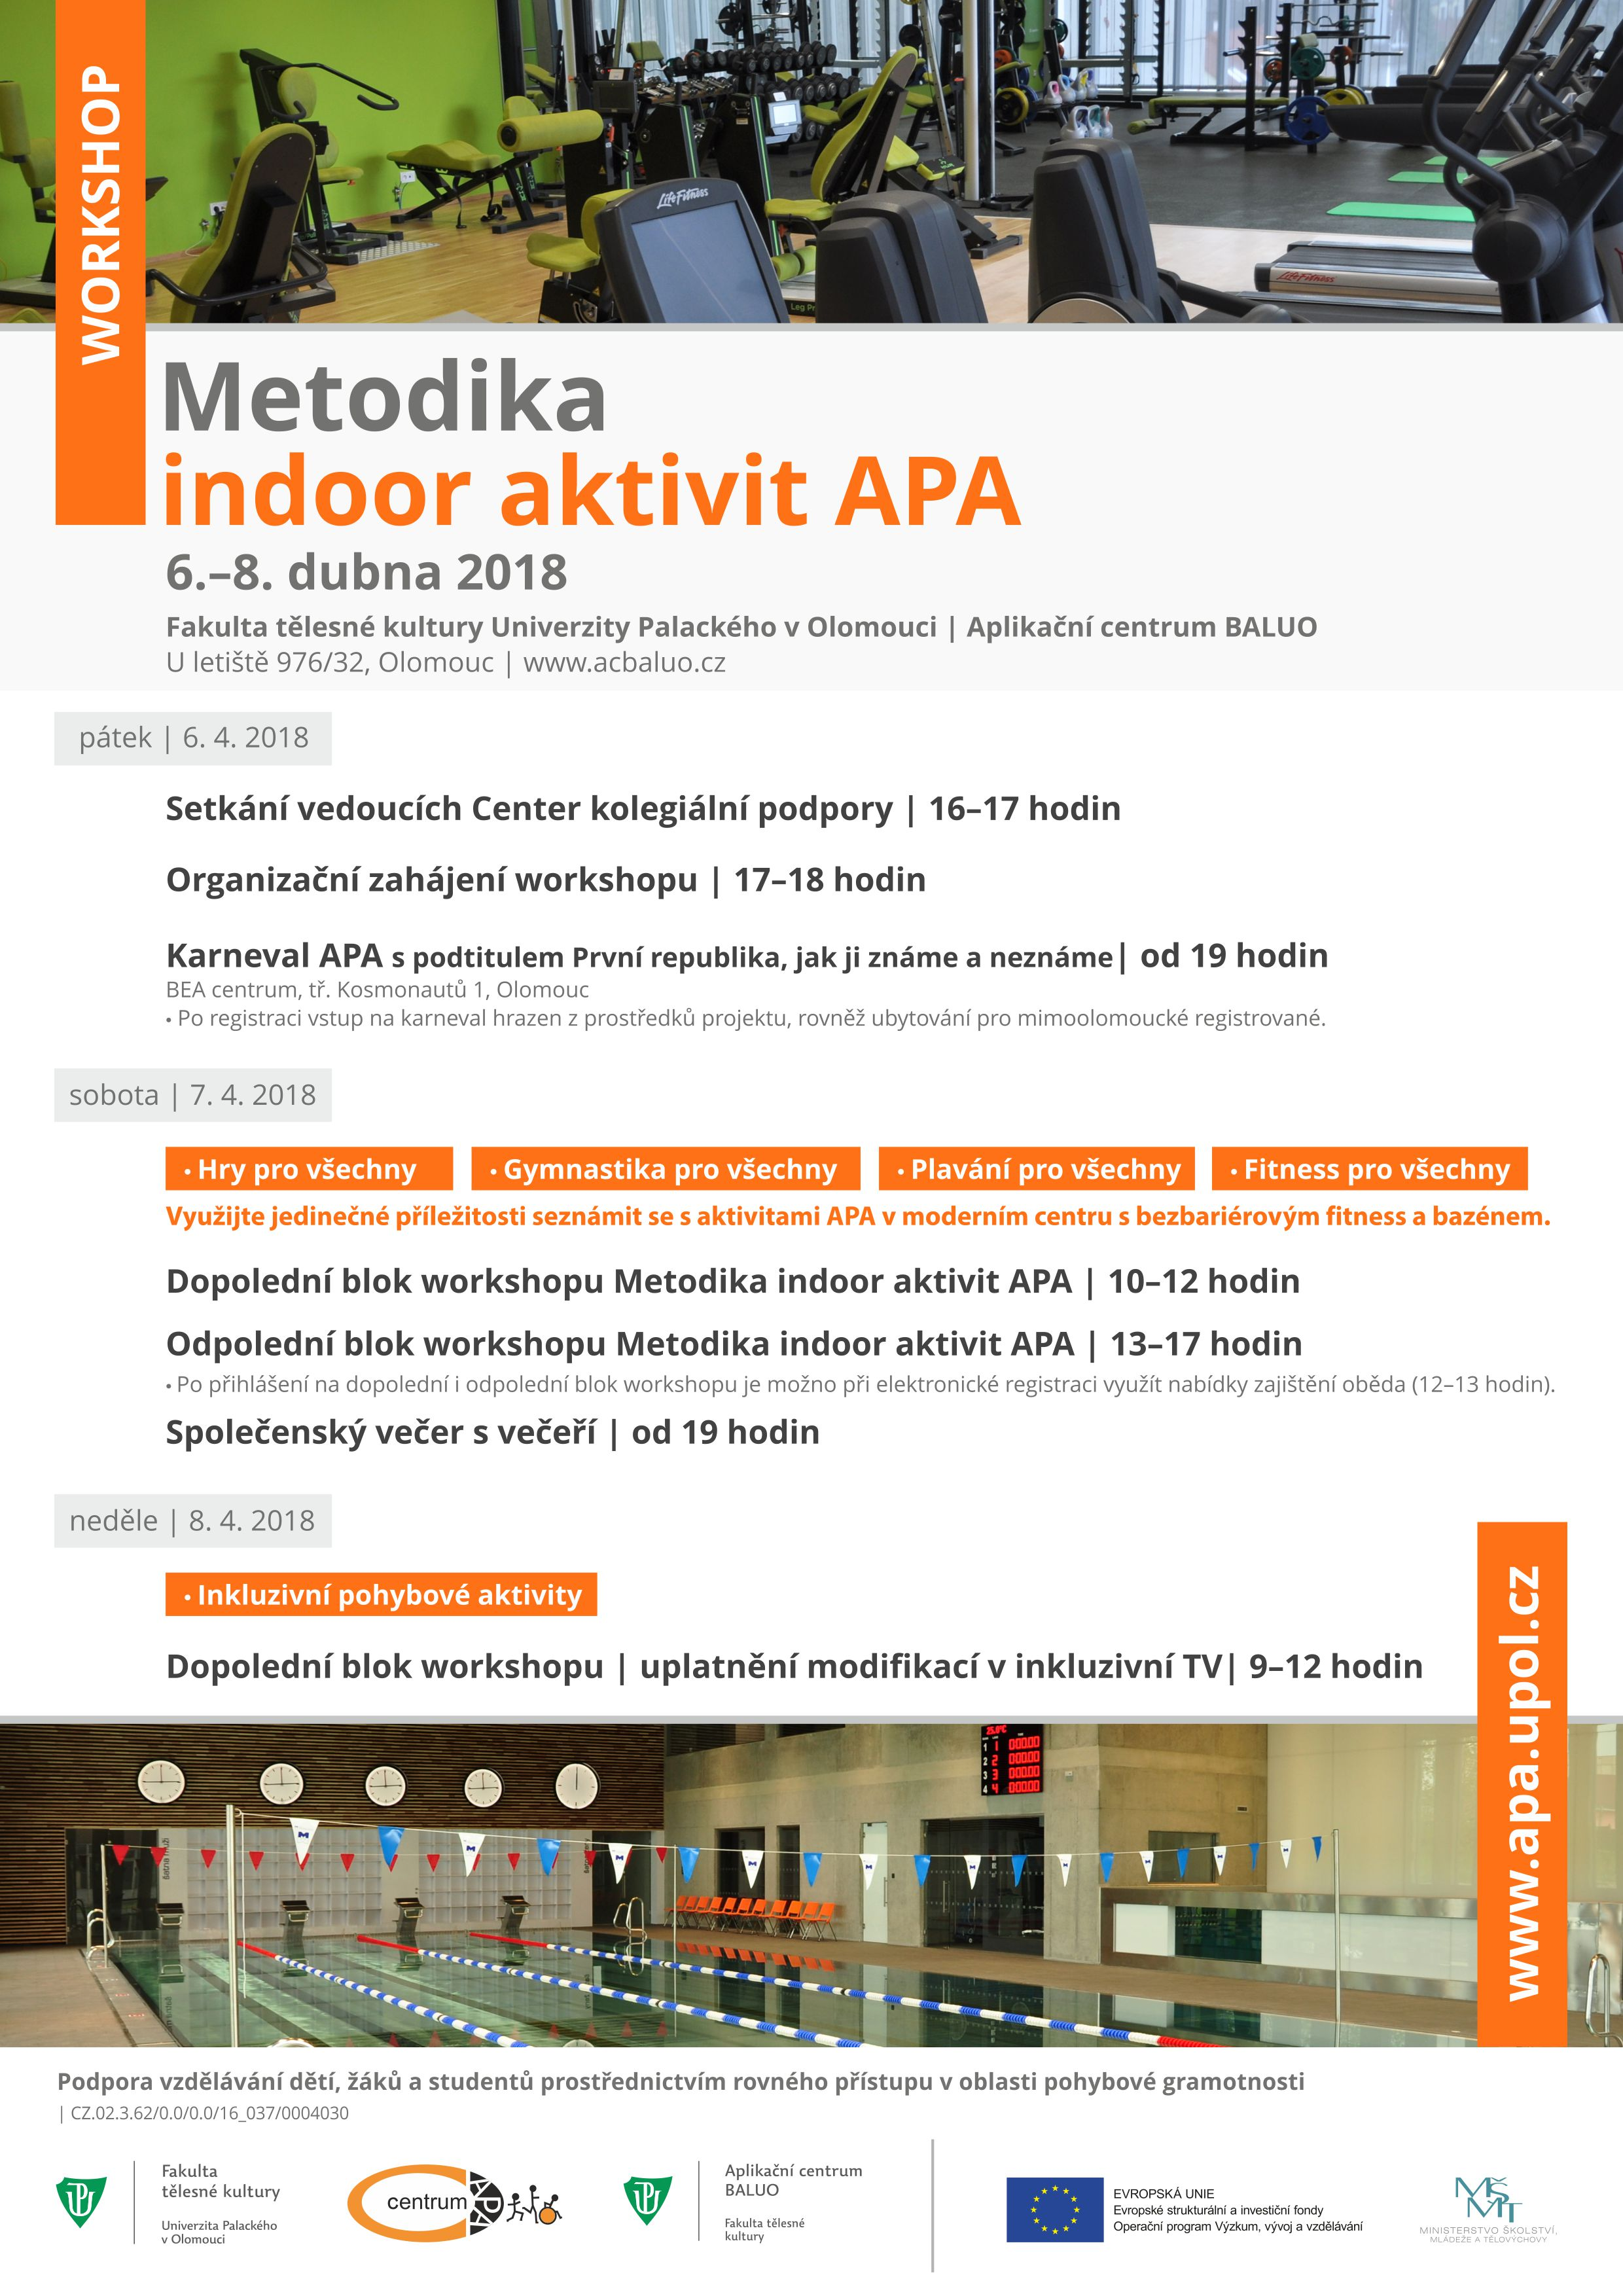 APA workshop Metodika indoor aktivit APA